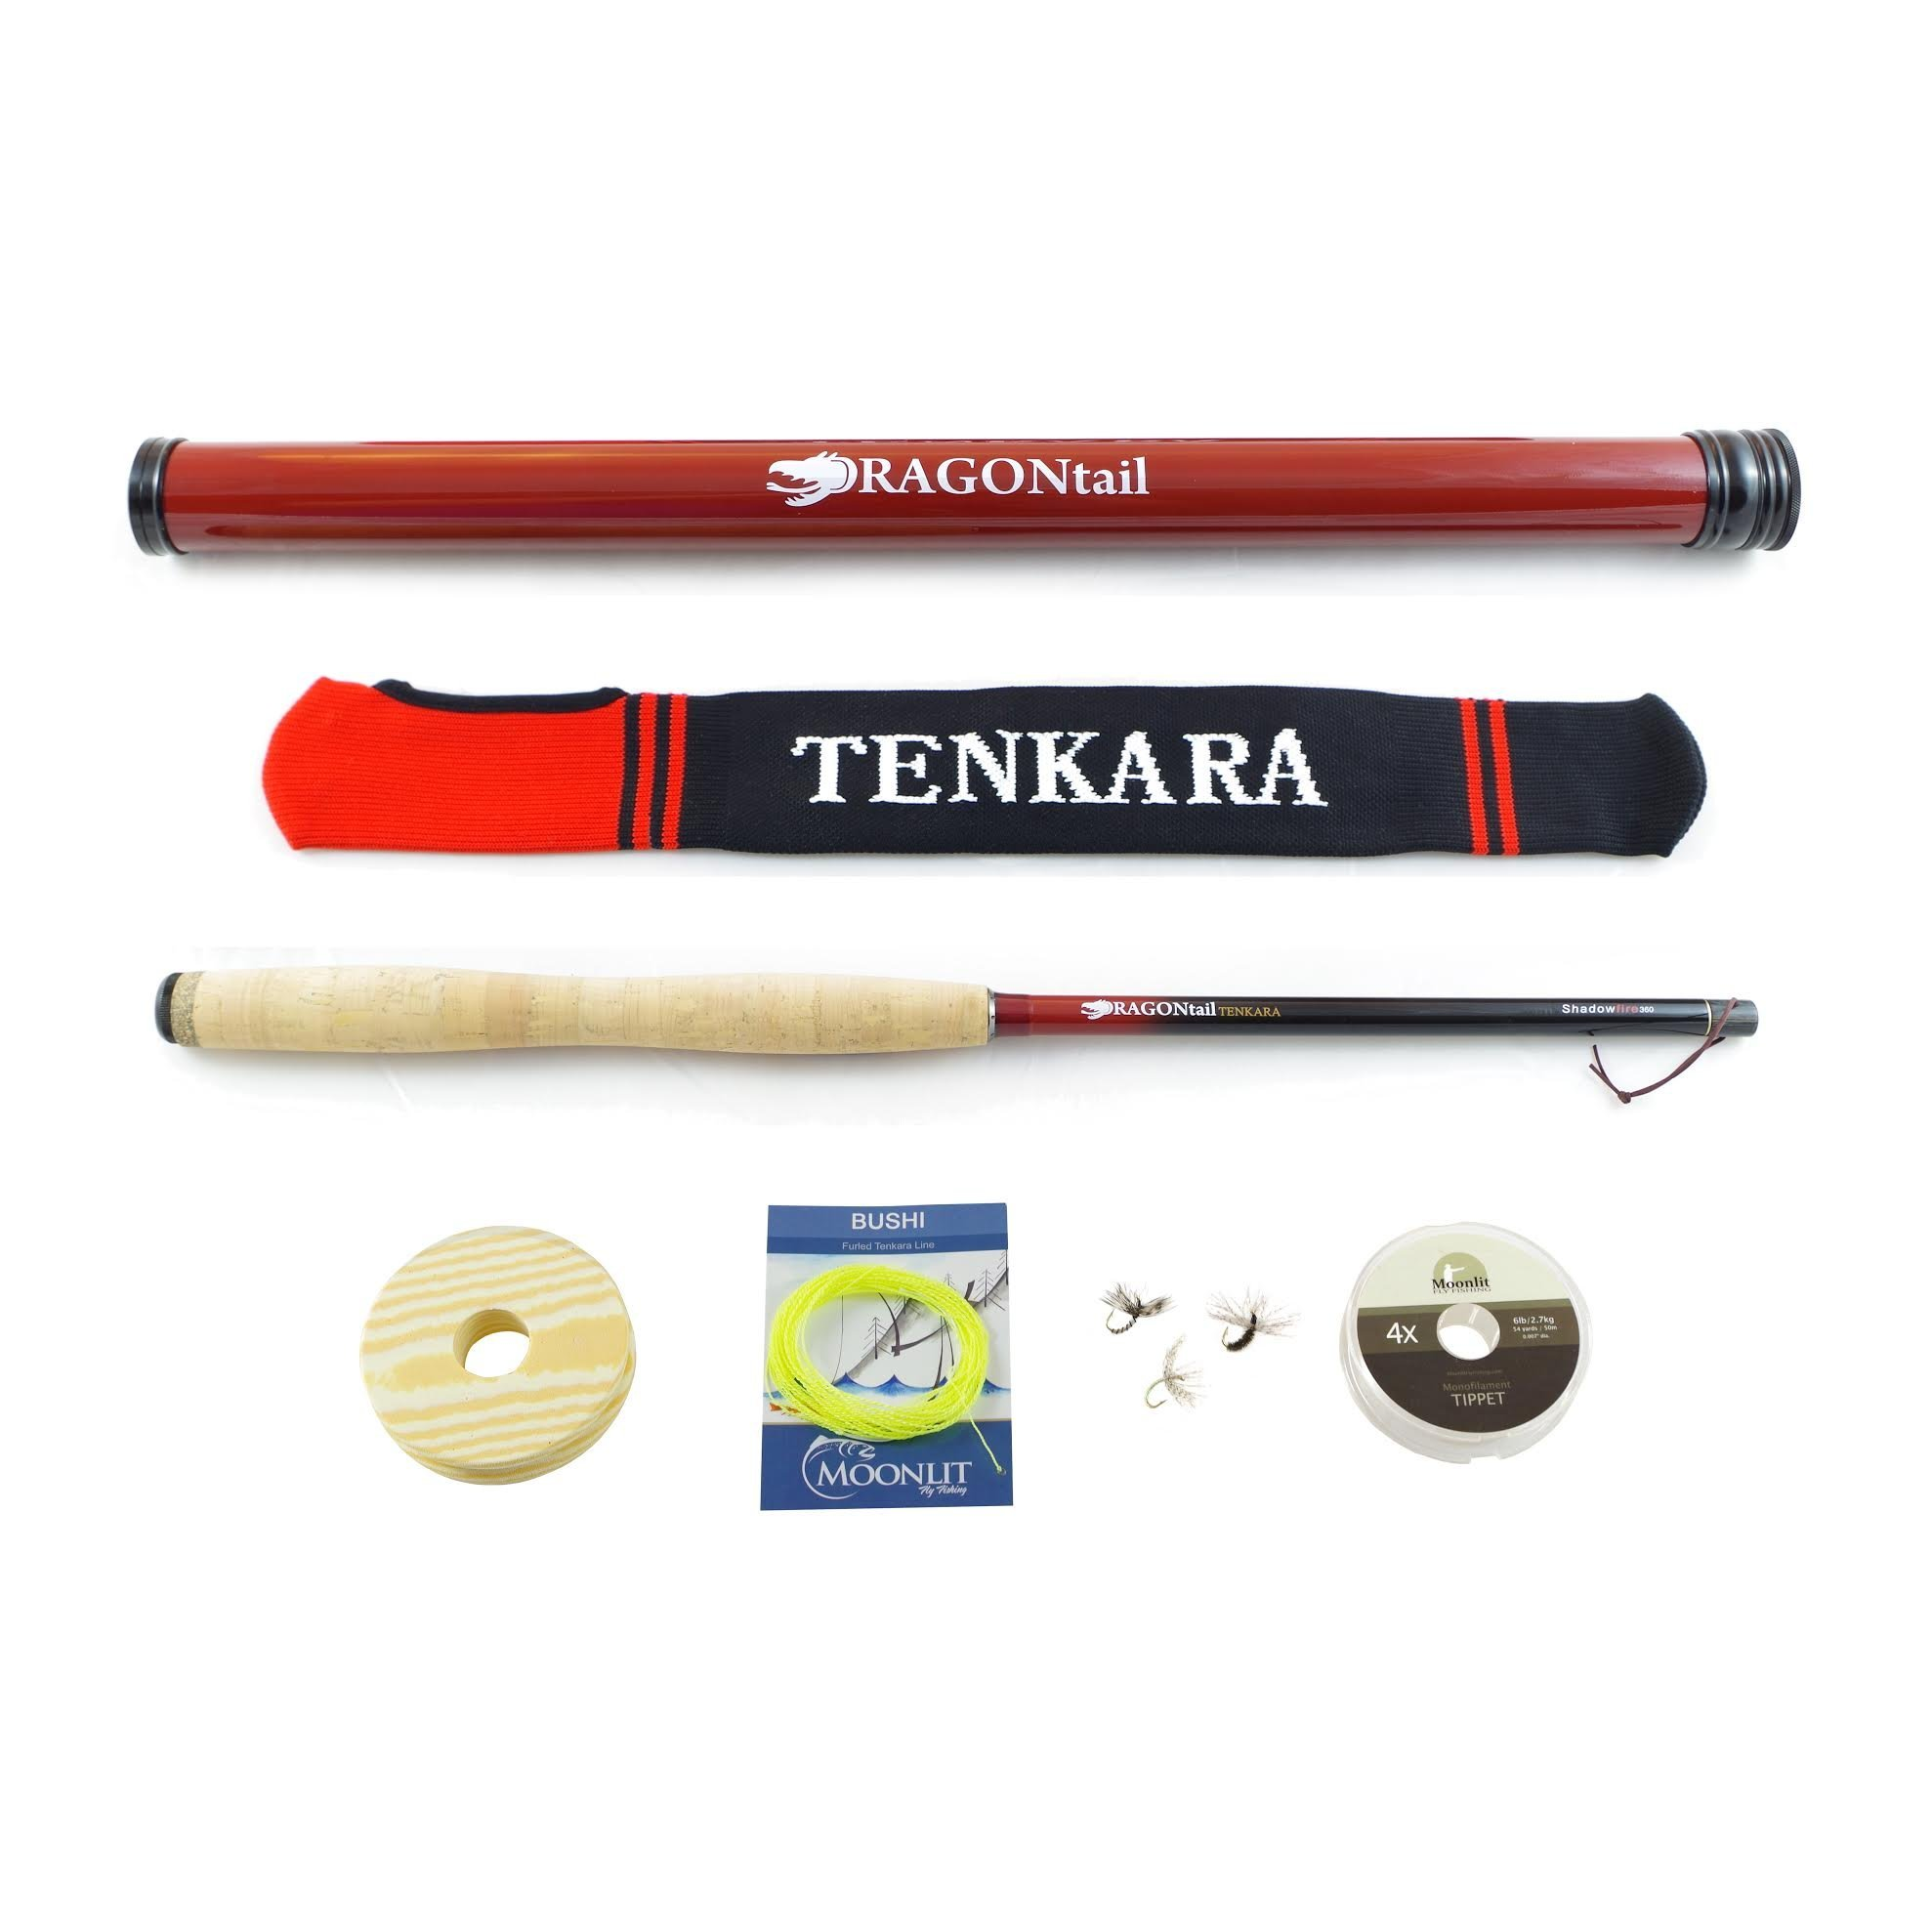 12-inch Dragontail Tenkara Shadow Fire